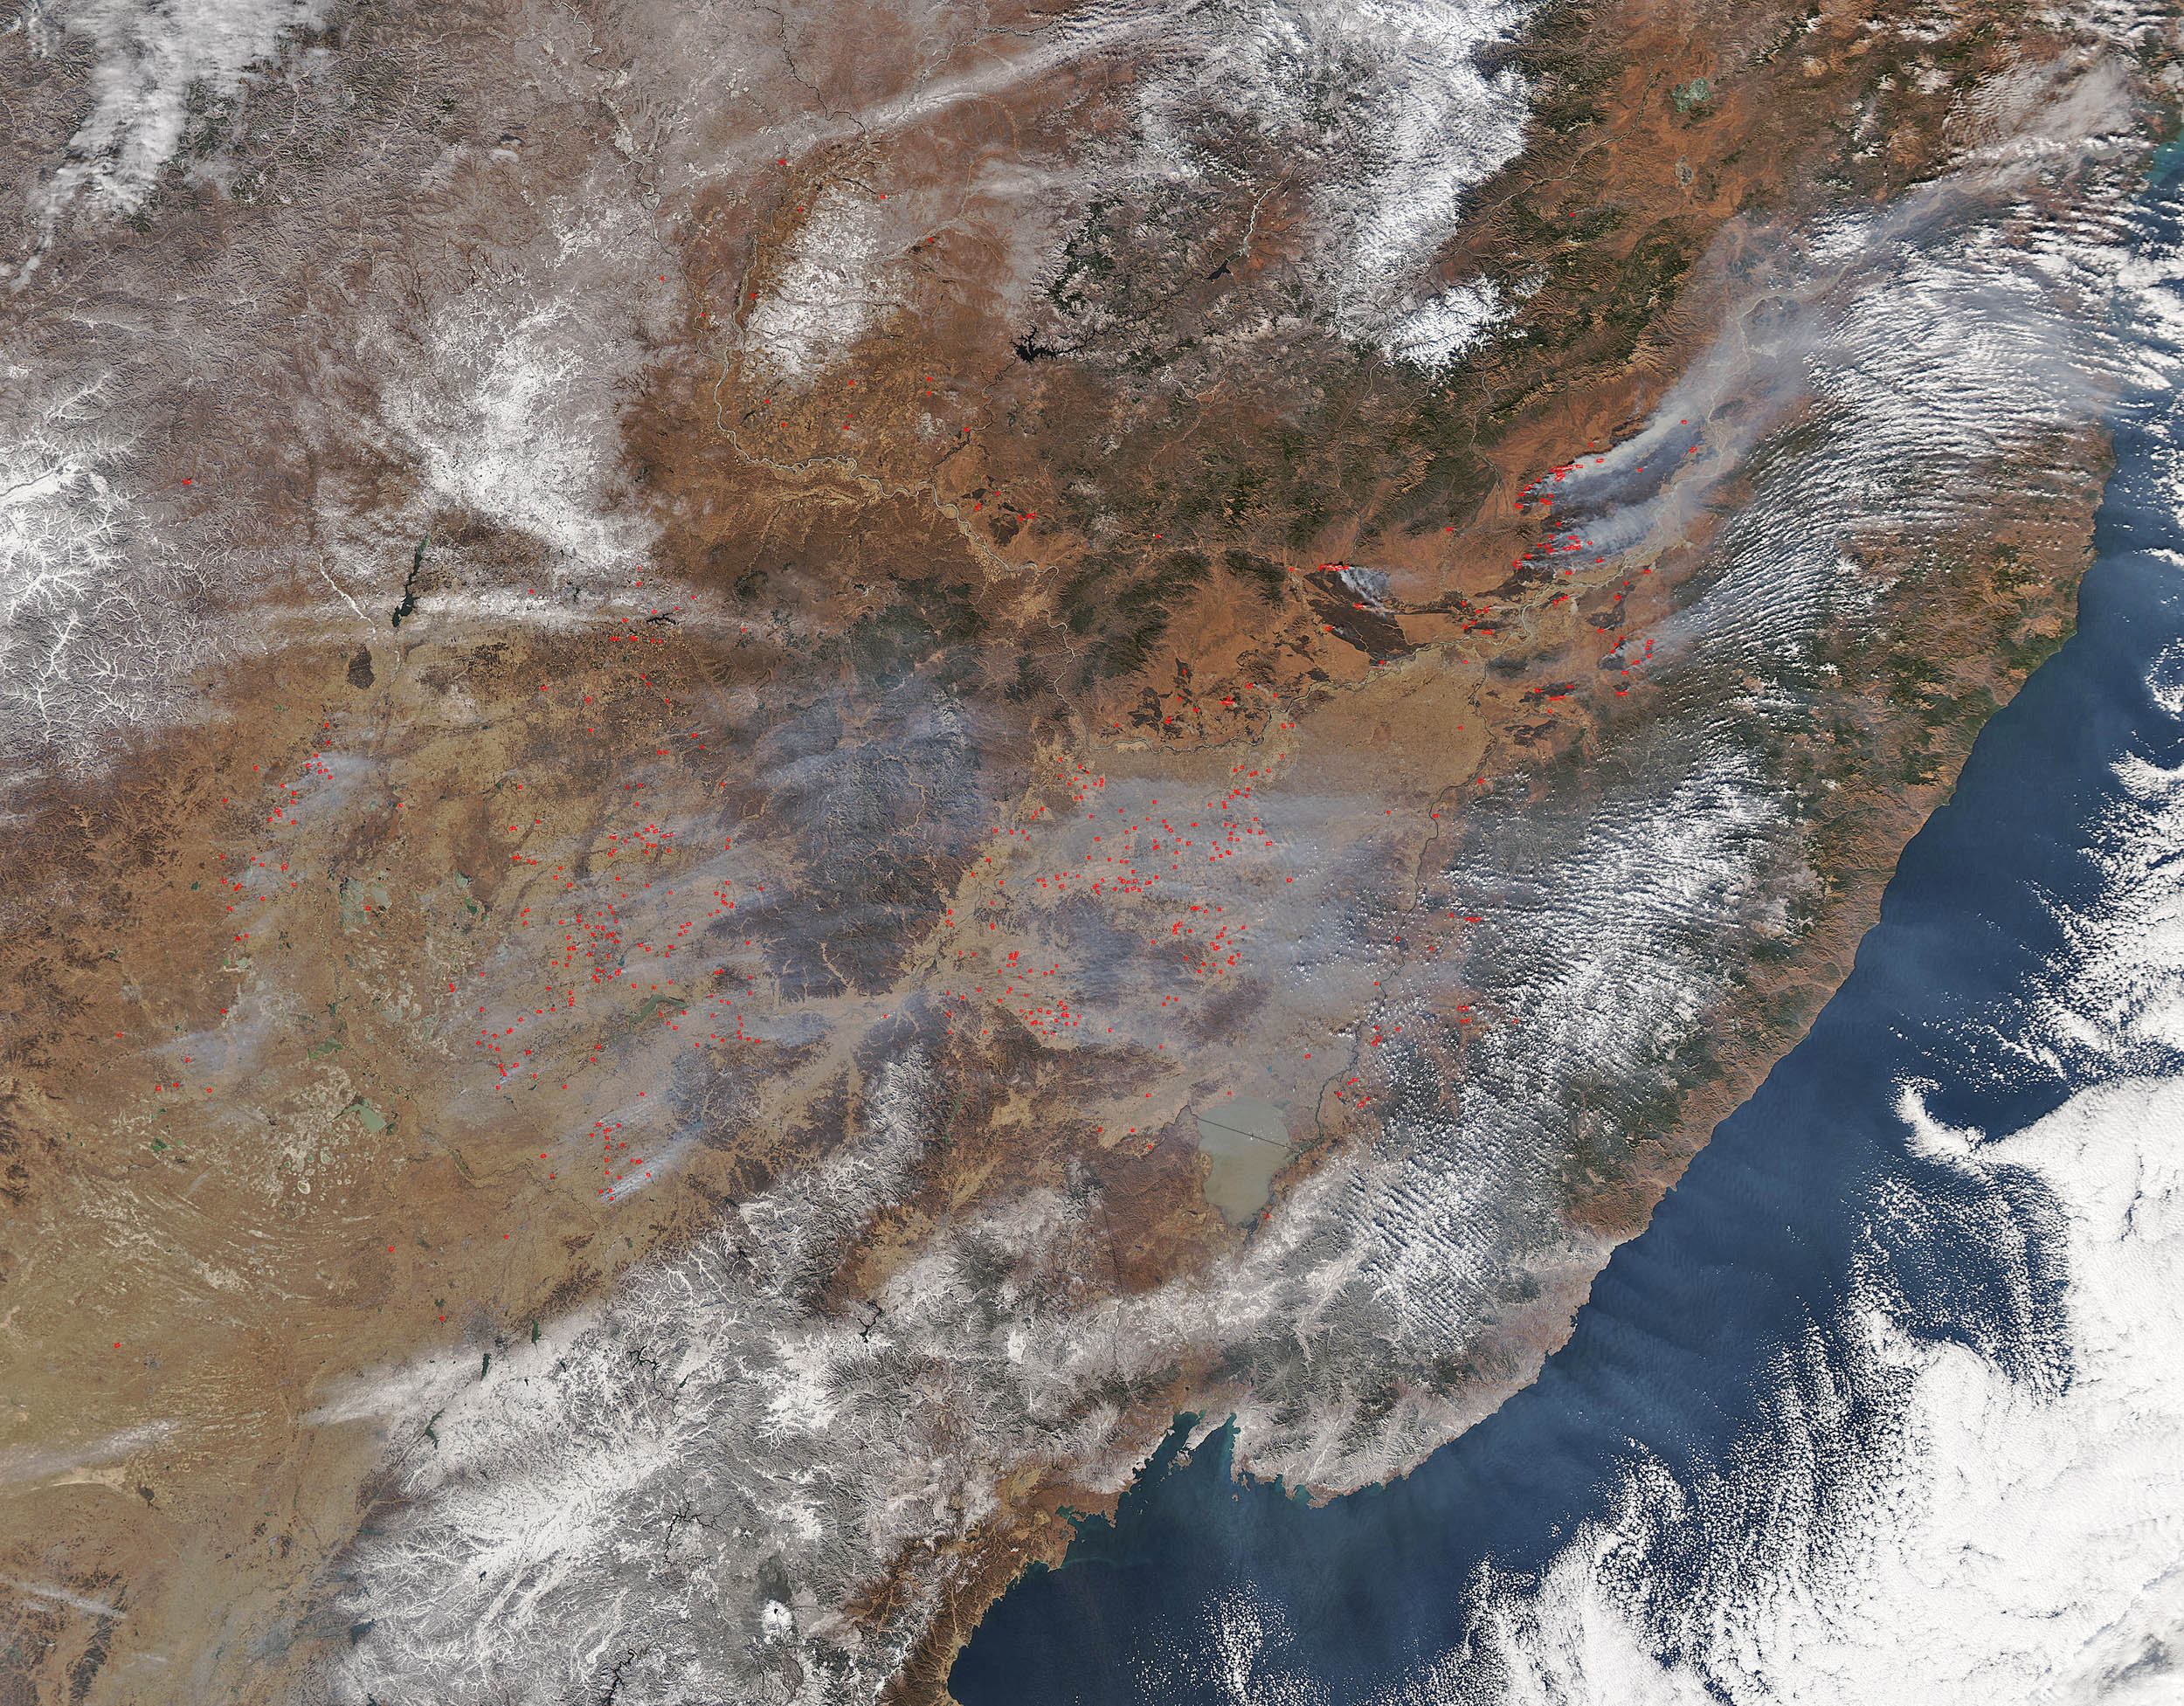 Wildfires in eastern China and Russia